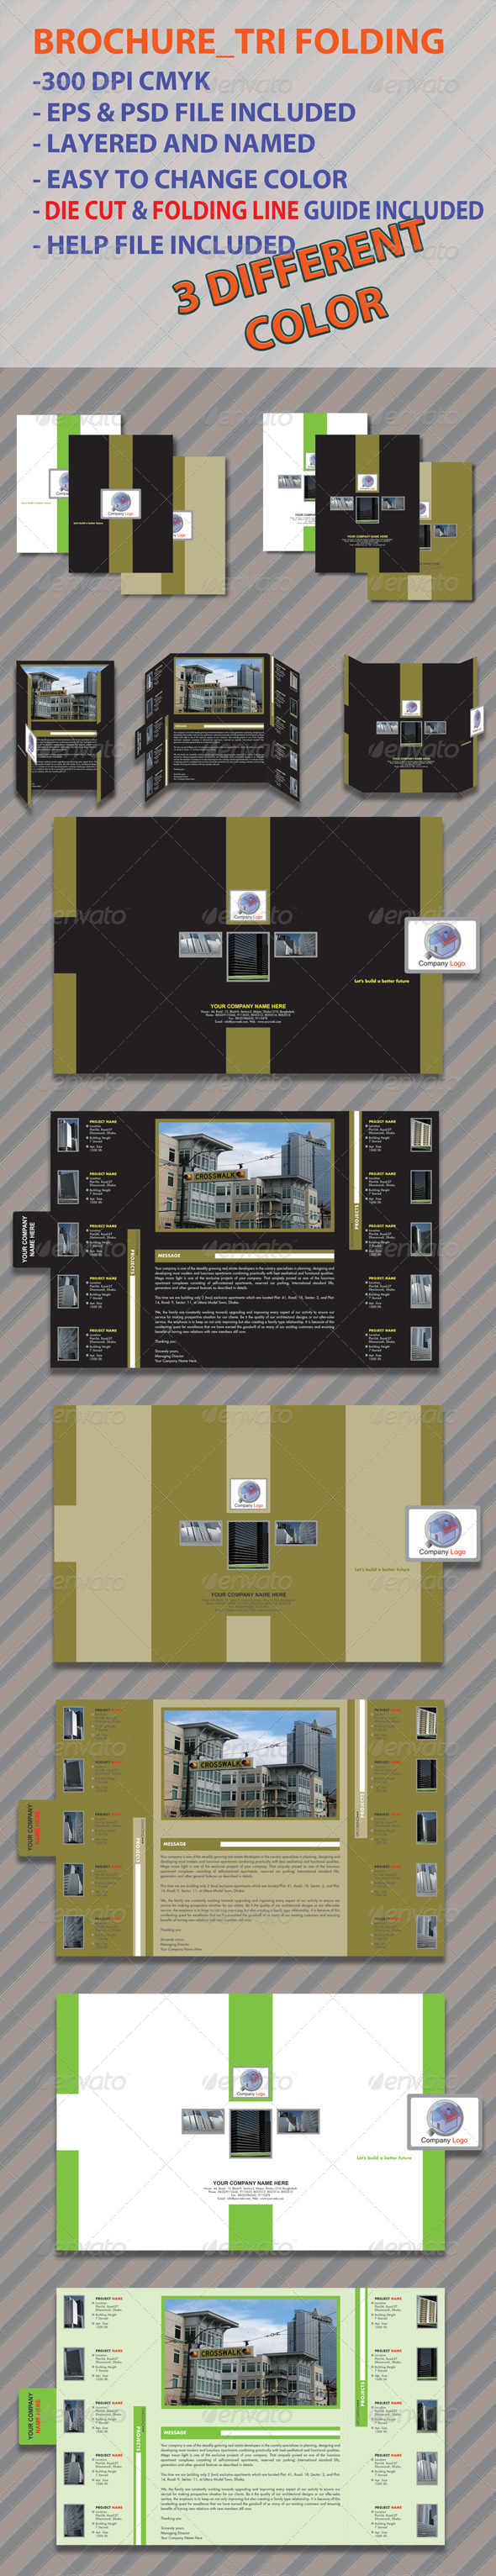 Print Ready Brochure_Trifolding - Corporate Brochures